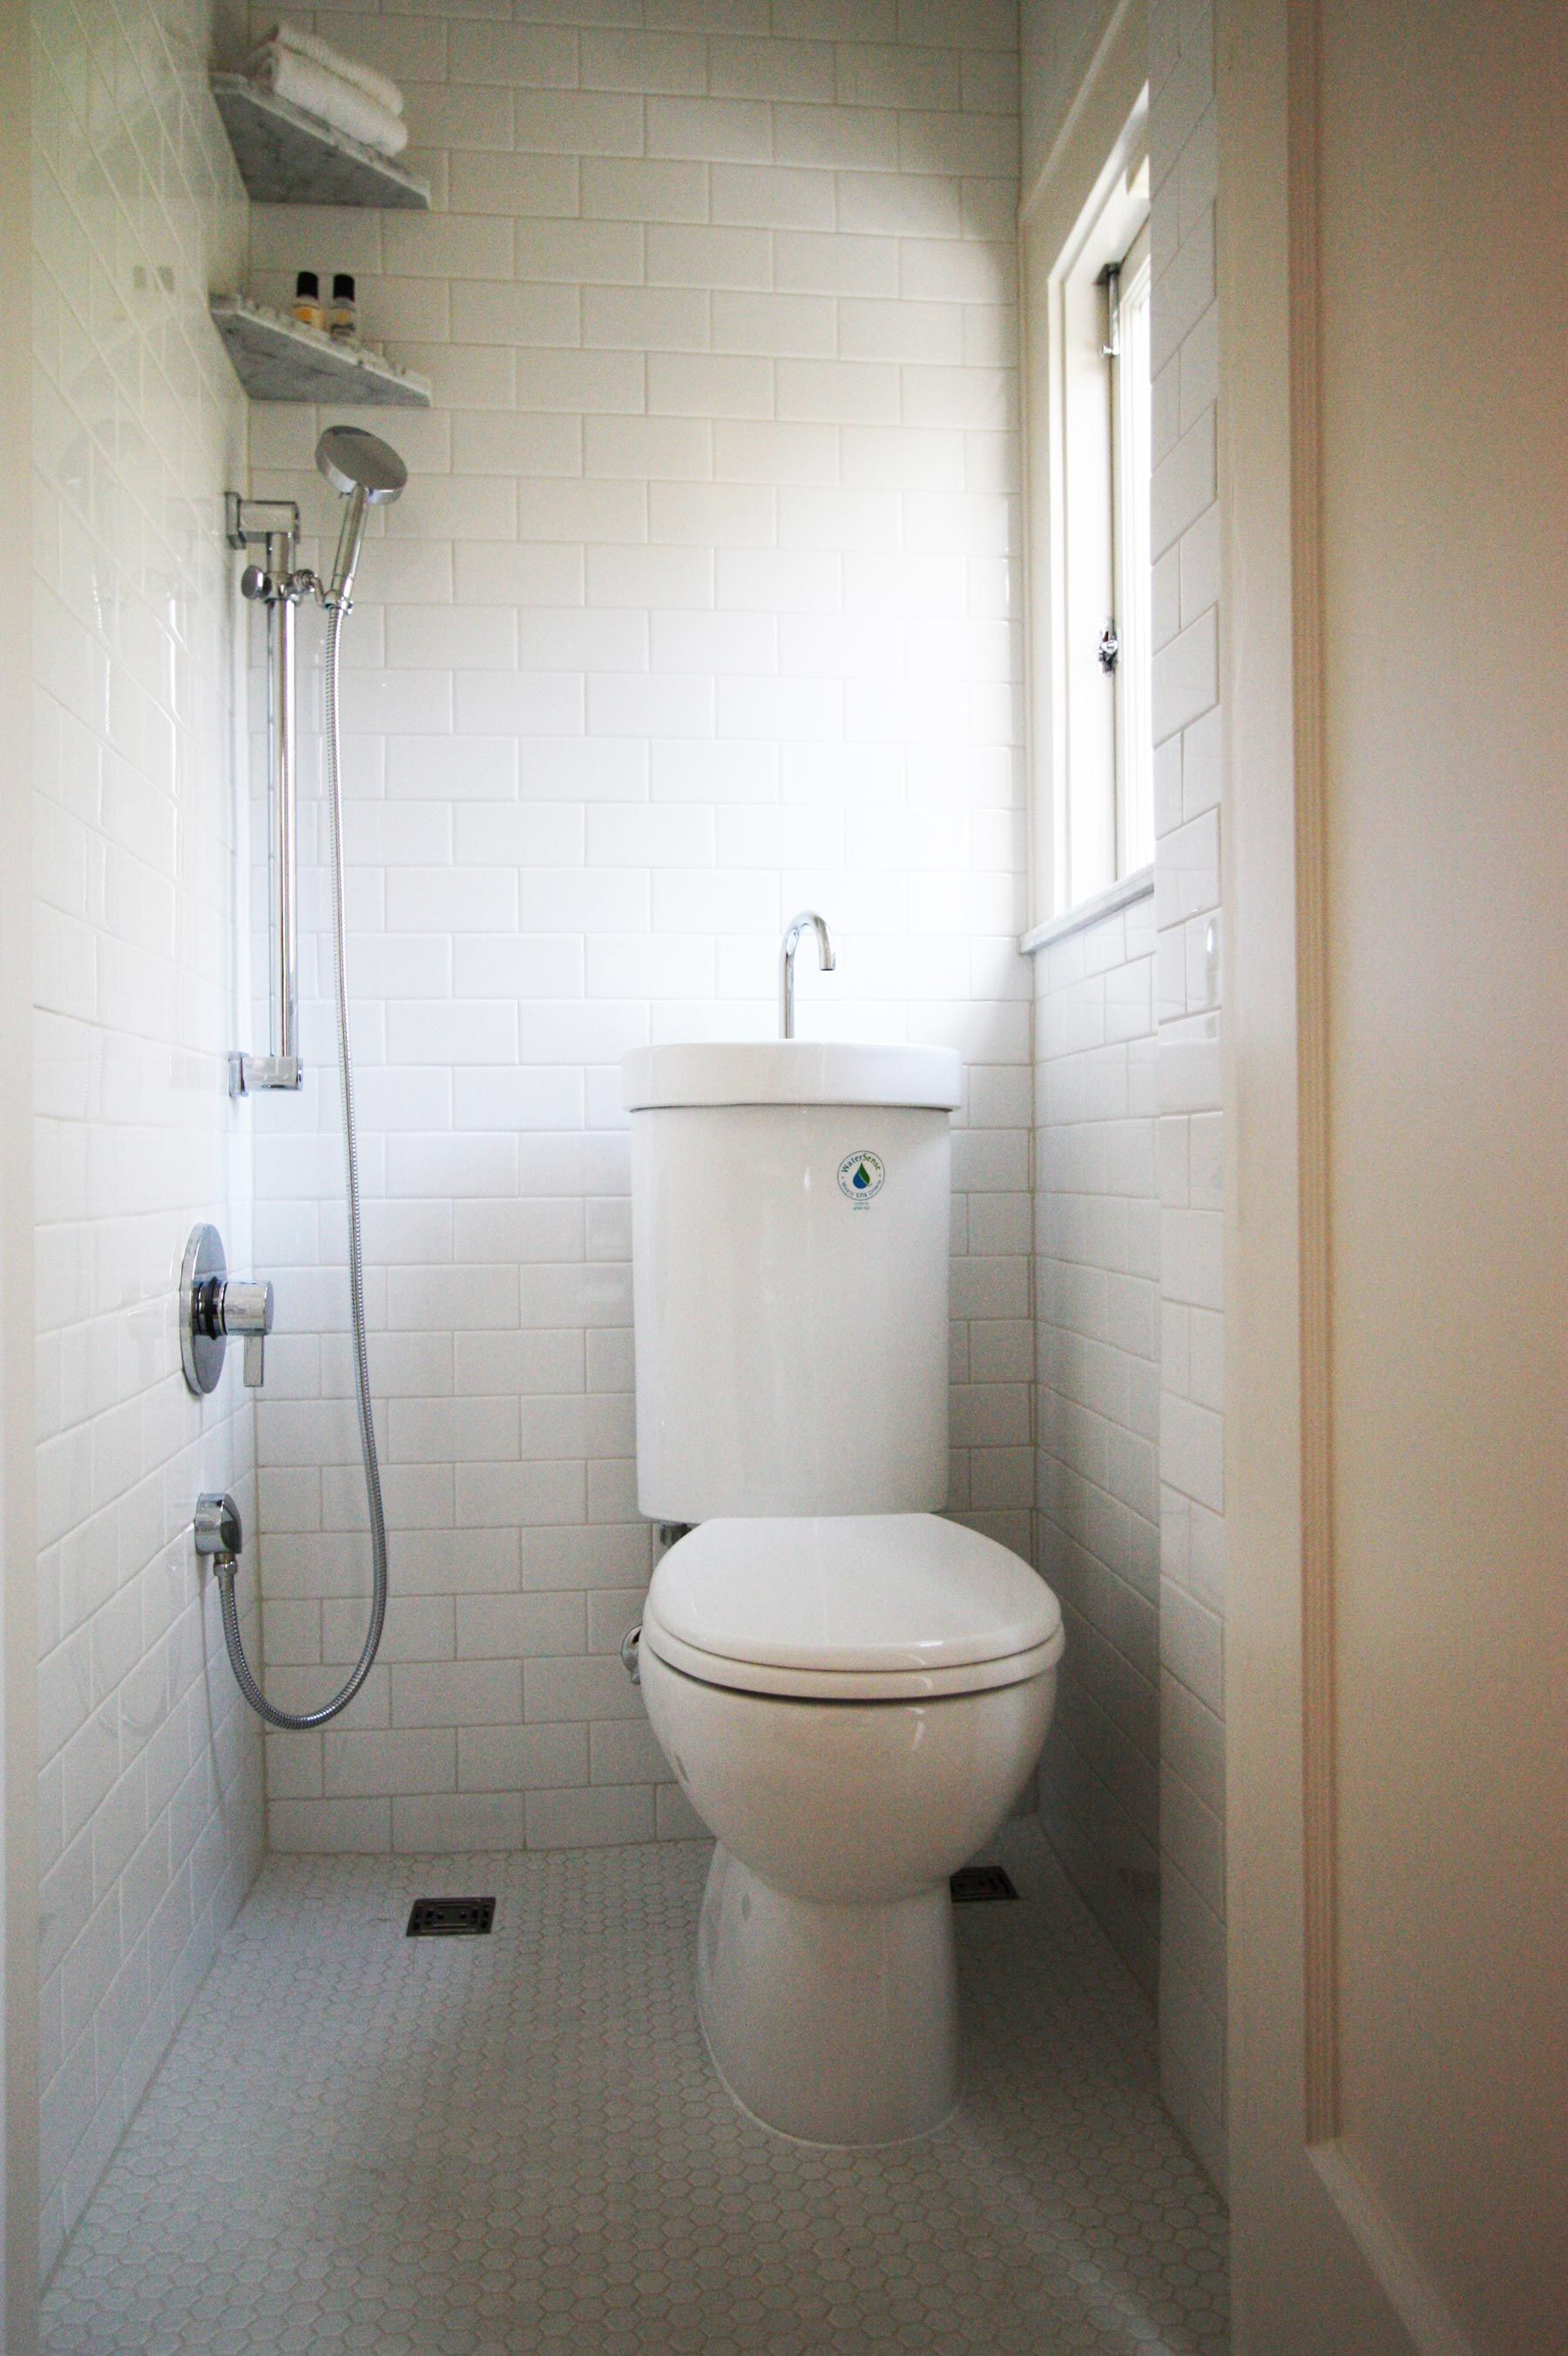 This bathroom is 3x3, sink and toilet are one fixture. Tiny Bathroom ...